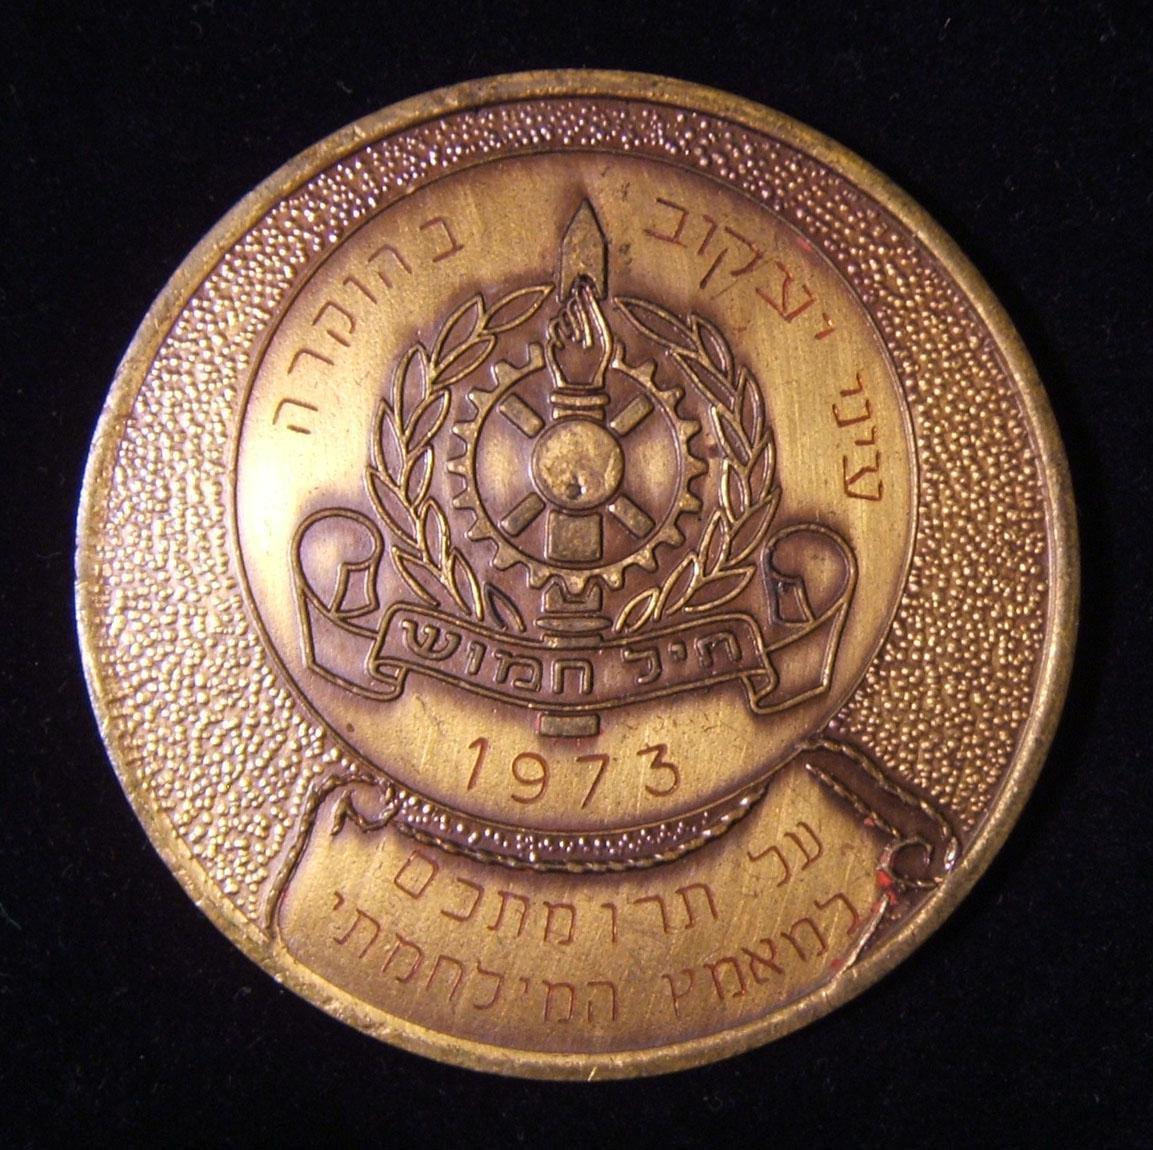 Israeli Army/IDF 6800th Replacement Equipment Center Yom Kippur War medal, 1973